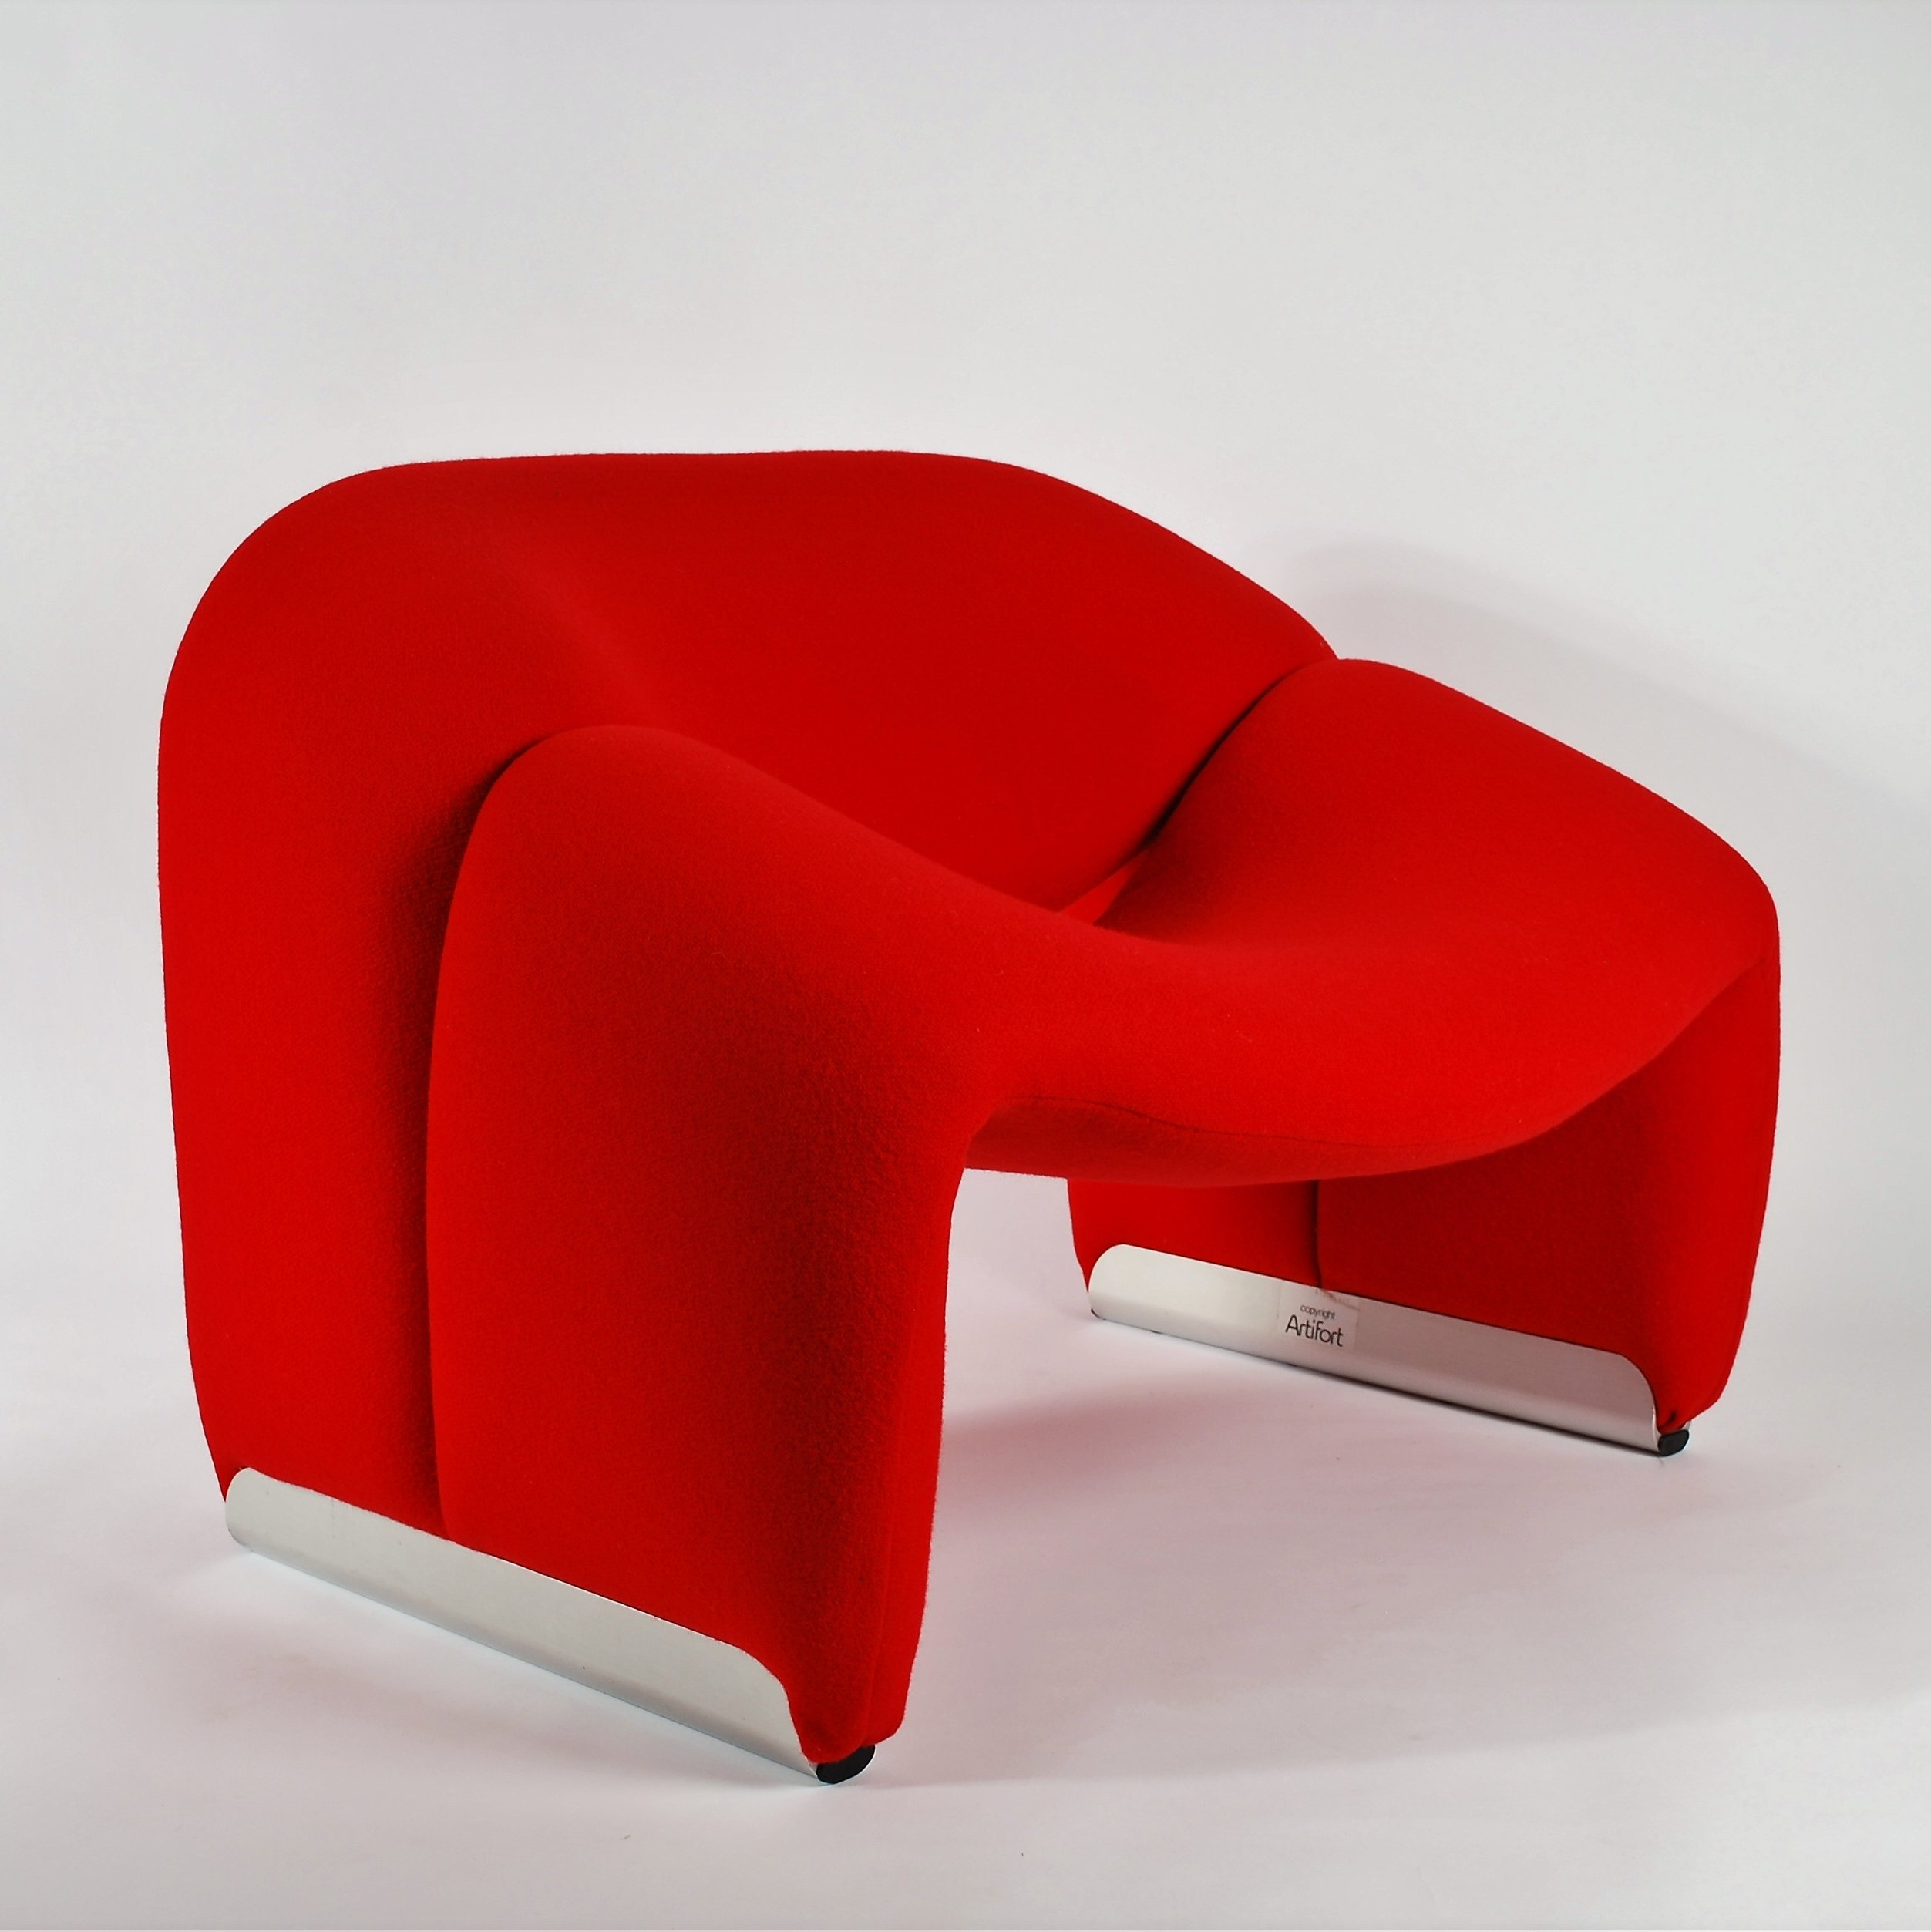 Pierre Paulin Sofa Artifort Red Groovy Chair F598 M Chair By Pierre Paulin